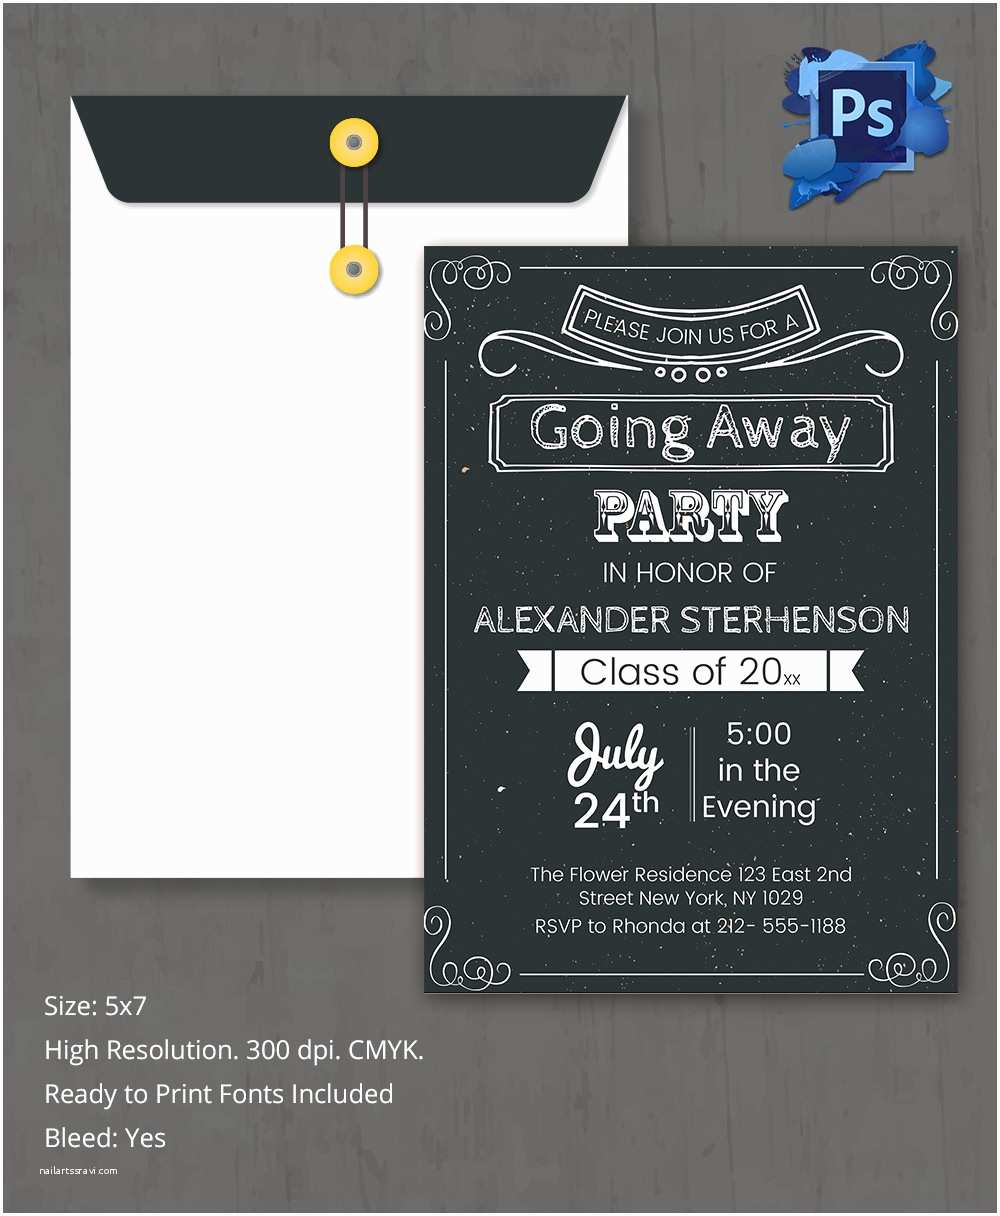 Going Away Party Invitation Farewell Party Invitation Template 26 Free Psd format